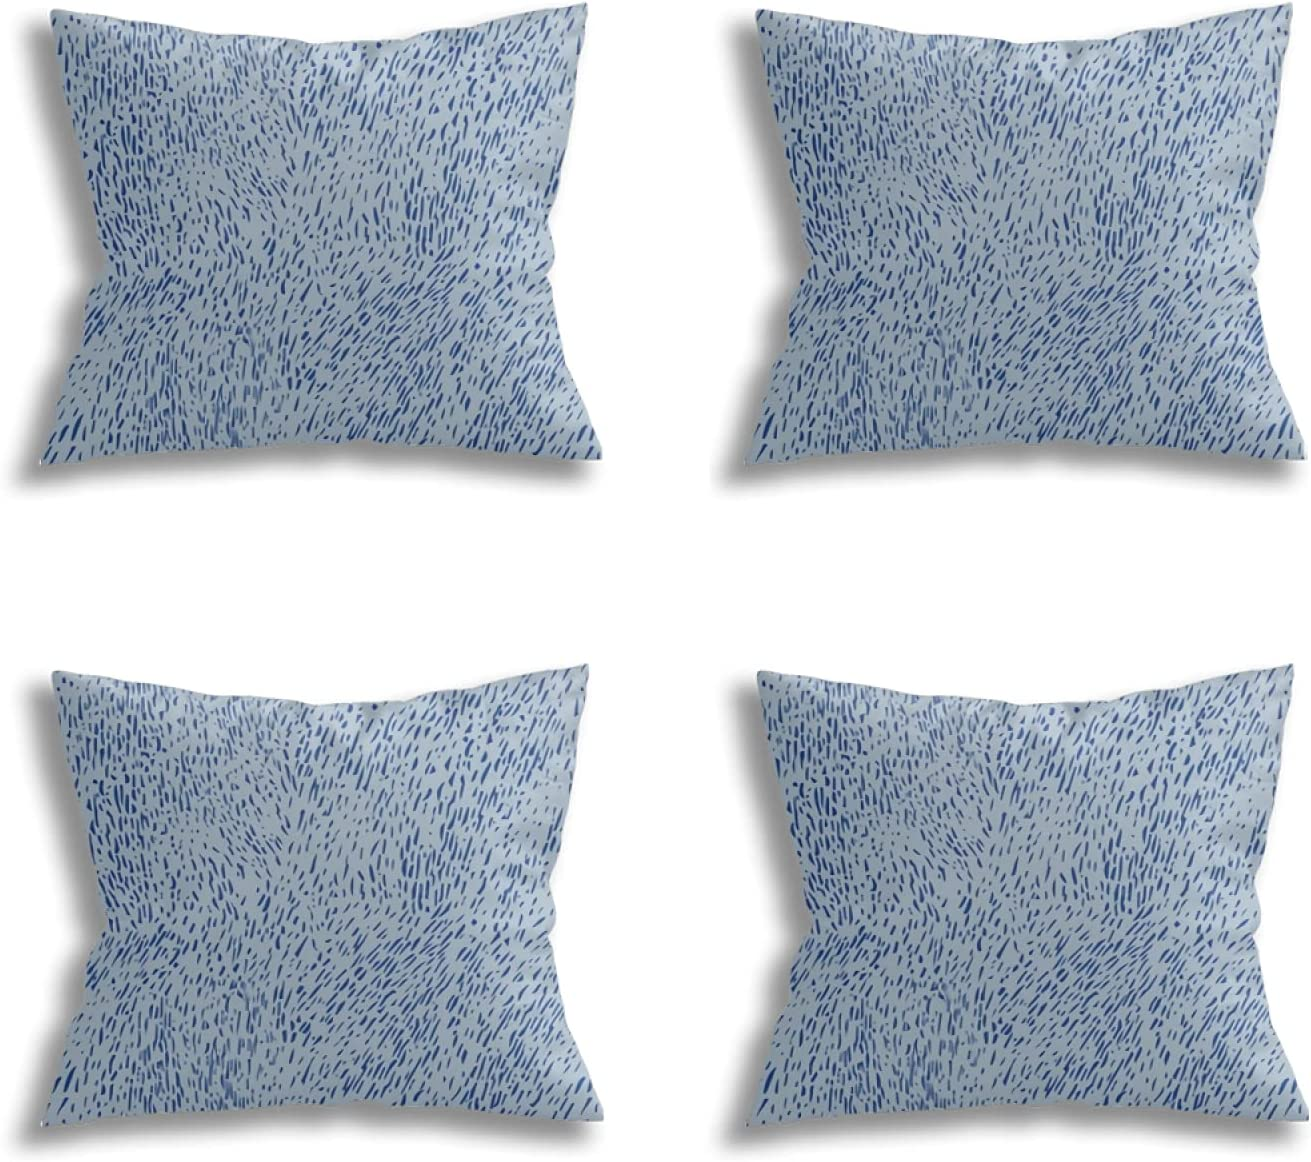 RVGHZA Set of 4 New product type Cheap sale Decorative Pillow Throw Couch Cove Covers